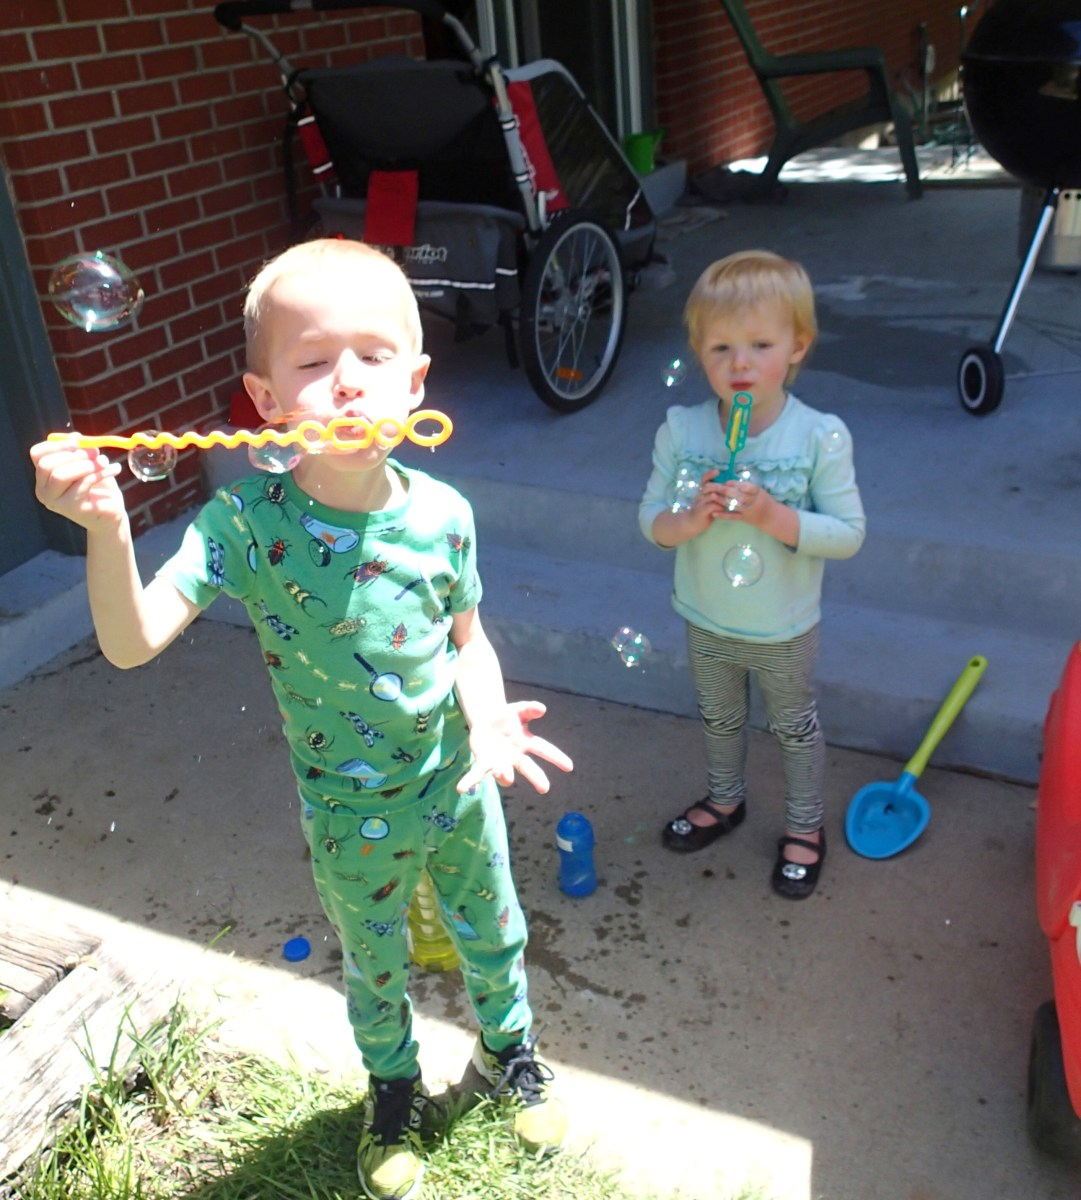 Reveling in the first official sunny DAY. (It was pj day at school, don't judge.)